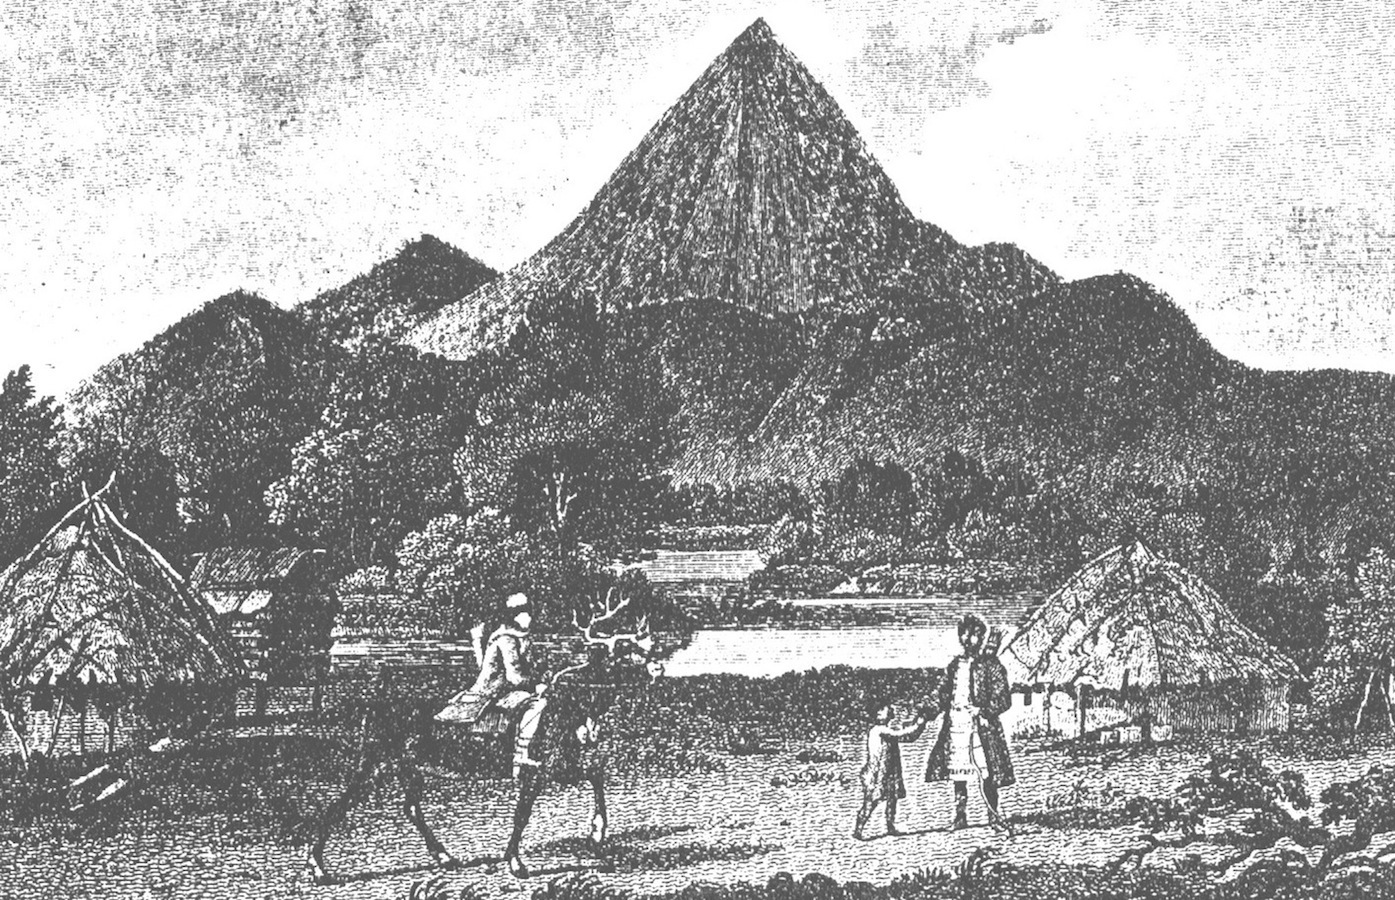 illustration from the Billings Expedition of the Tungus village near Okhotsk